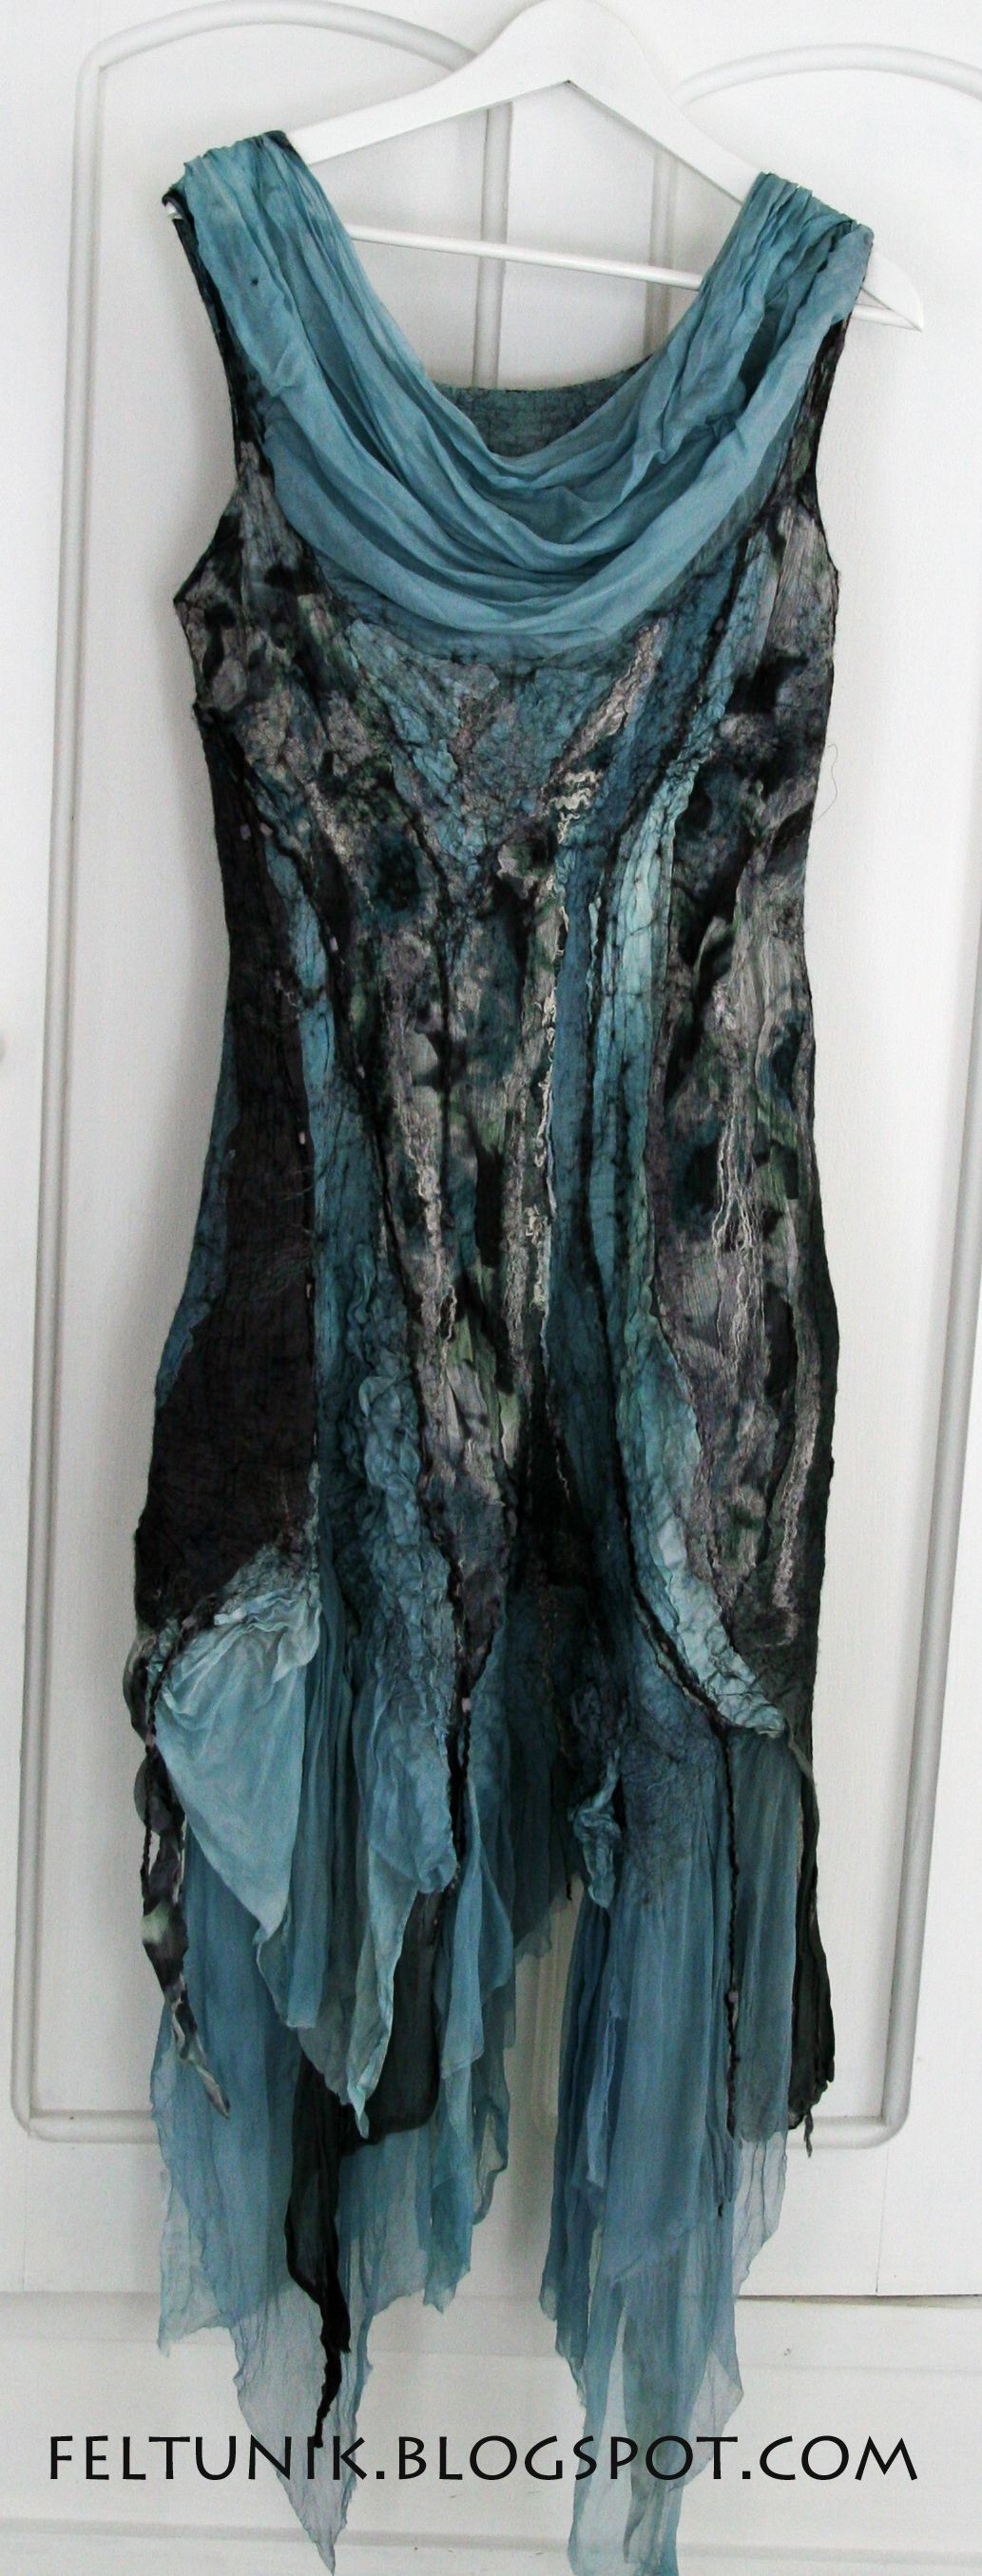 Black And Dusty Teal Tunic Ethereal Layers Of Lightweight